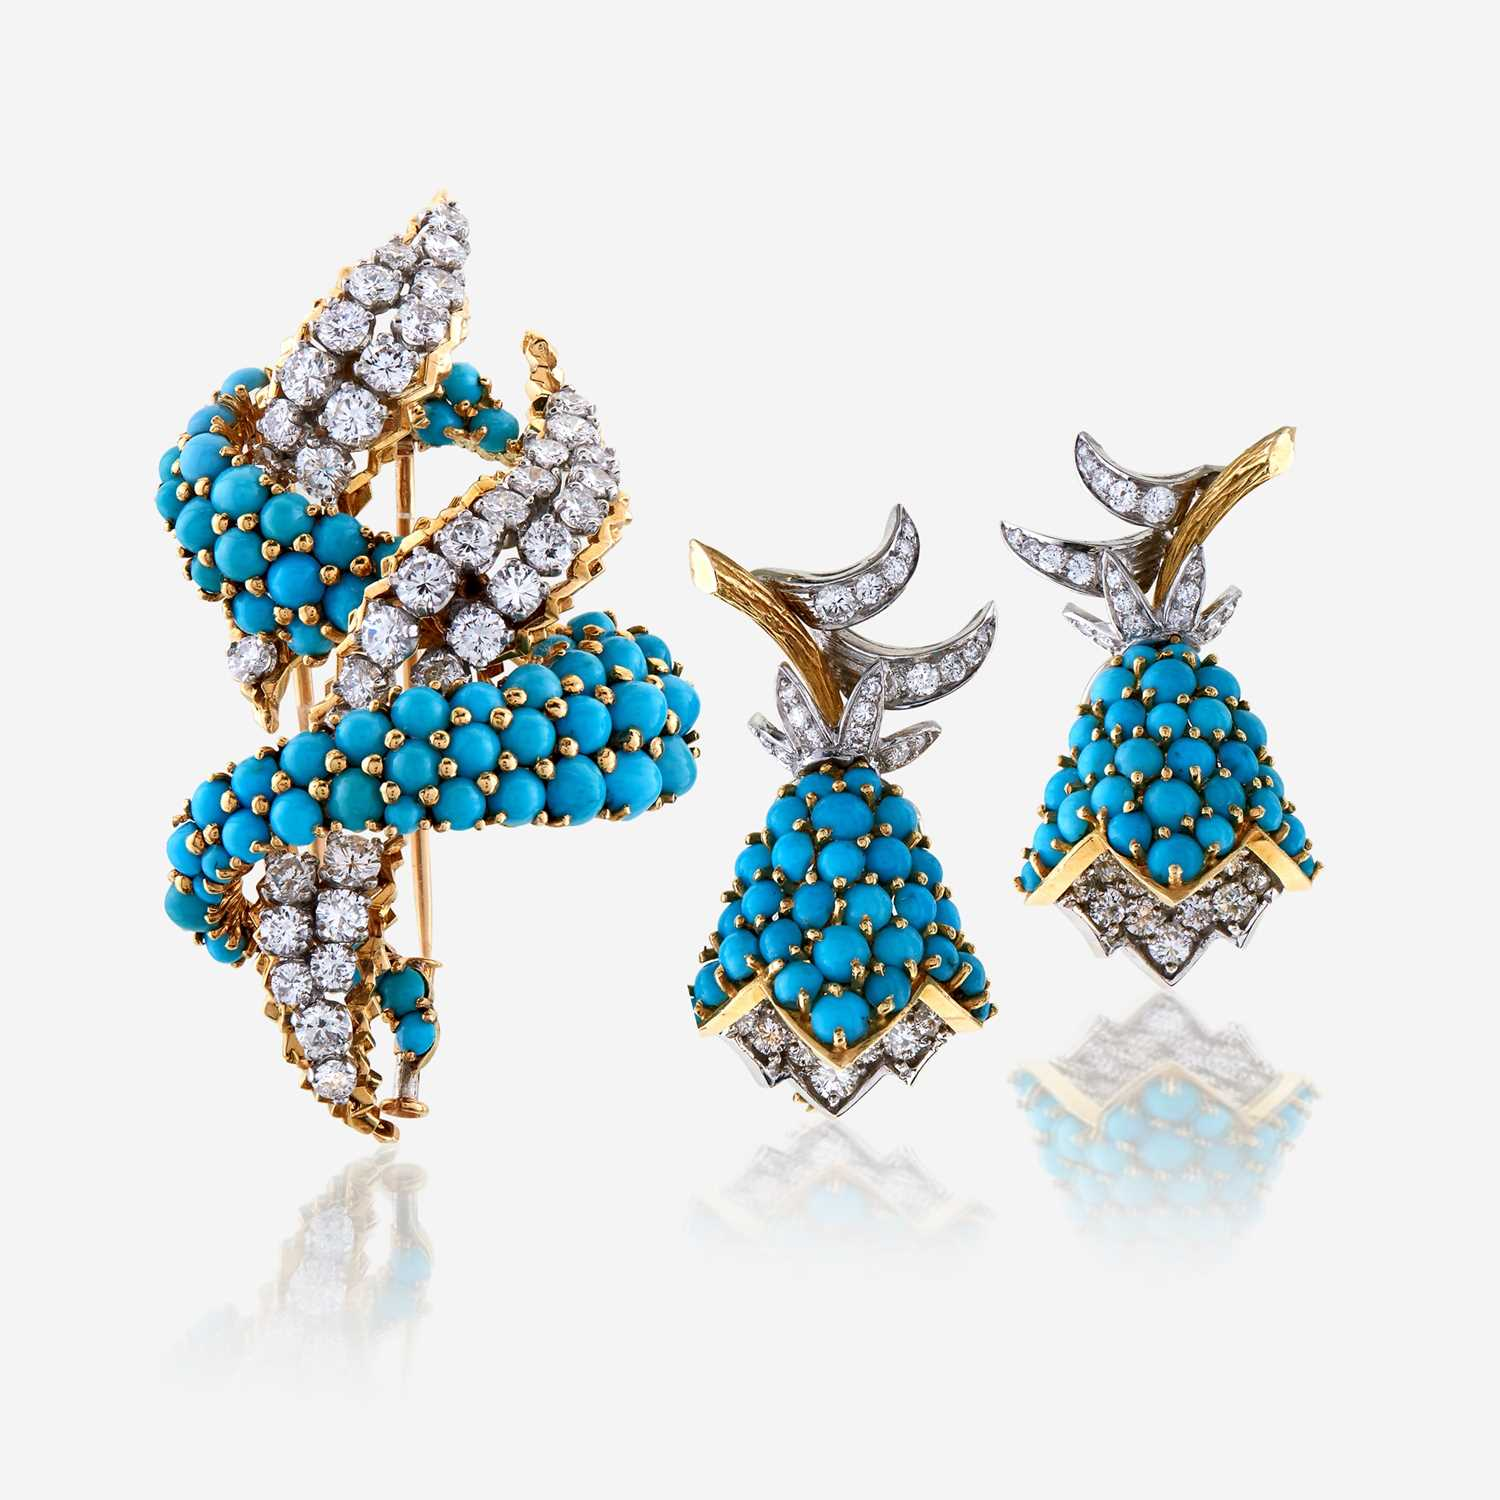 Lot 21 - A diamond, turquoise, and eighteen karat gold brooch with matching ear clips, Cartier